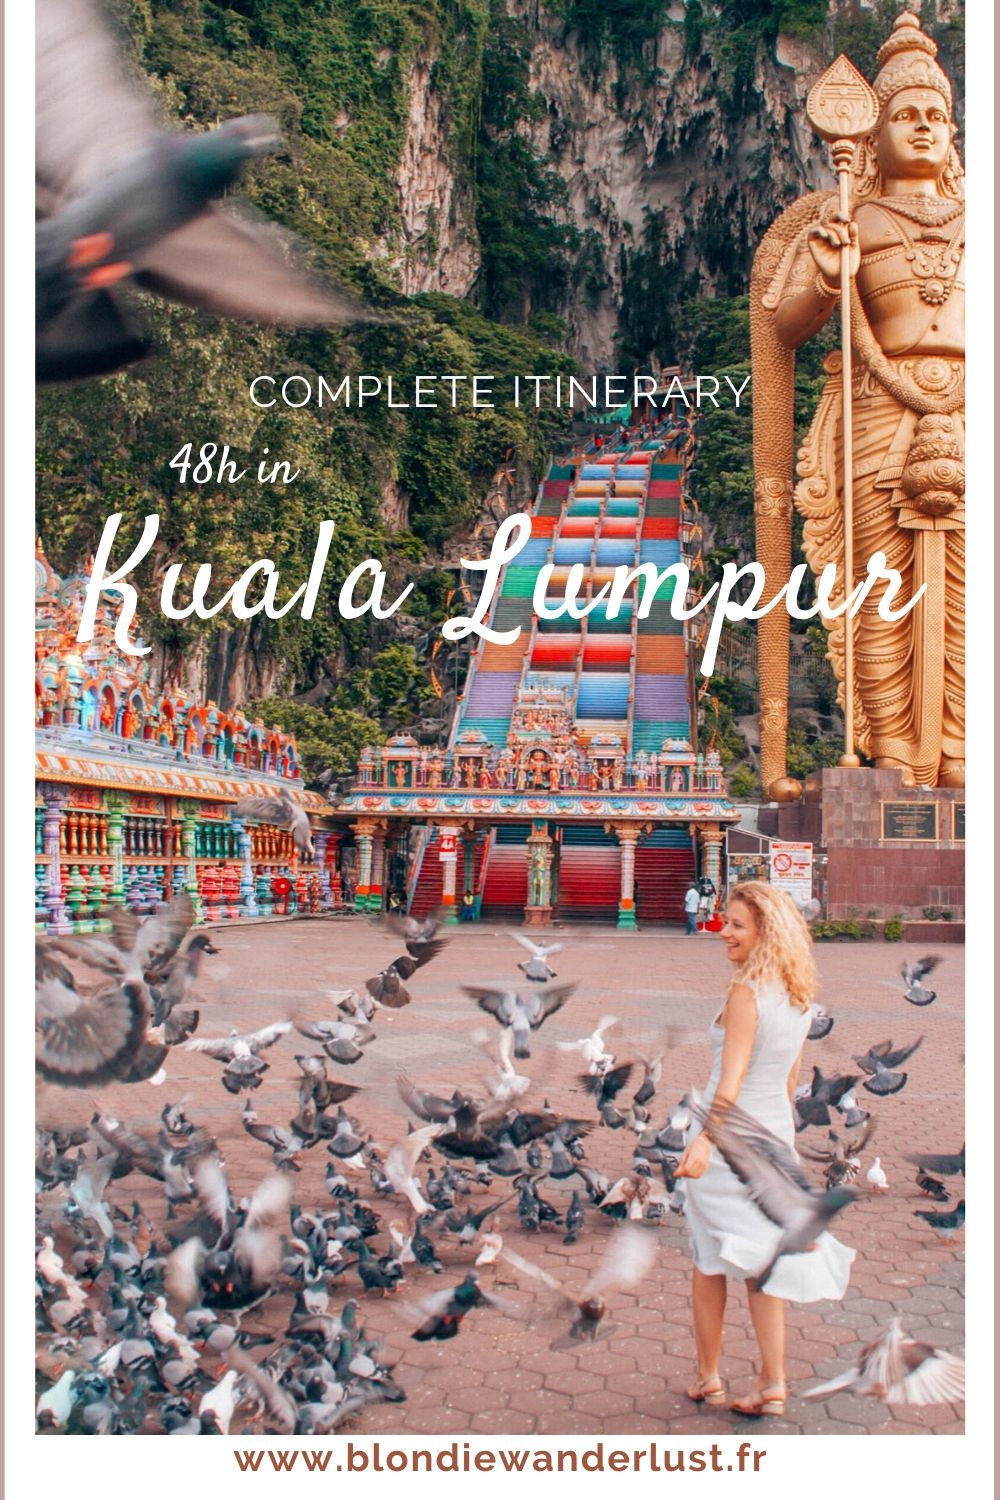 48h in Kuala Lumpur, the complete itinerary